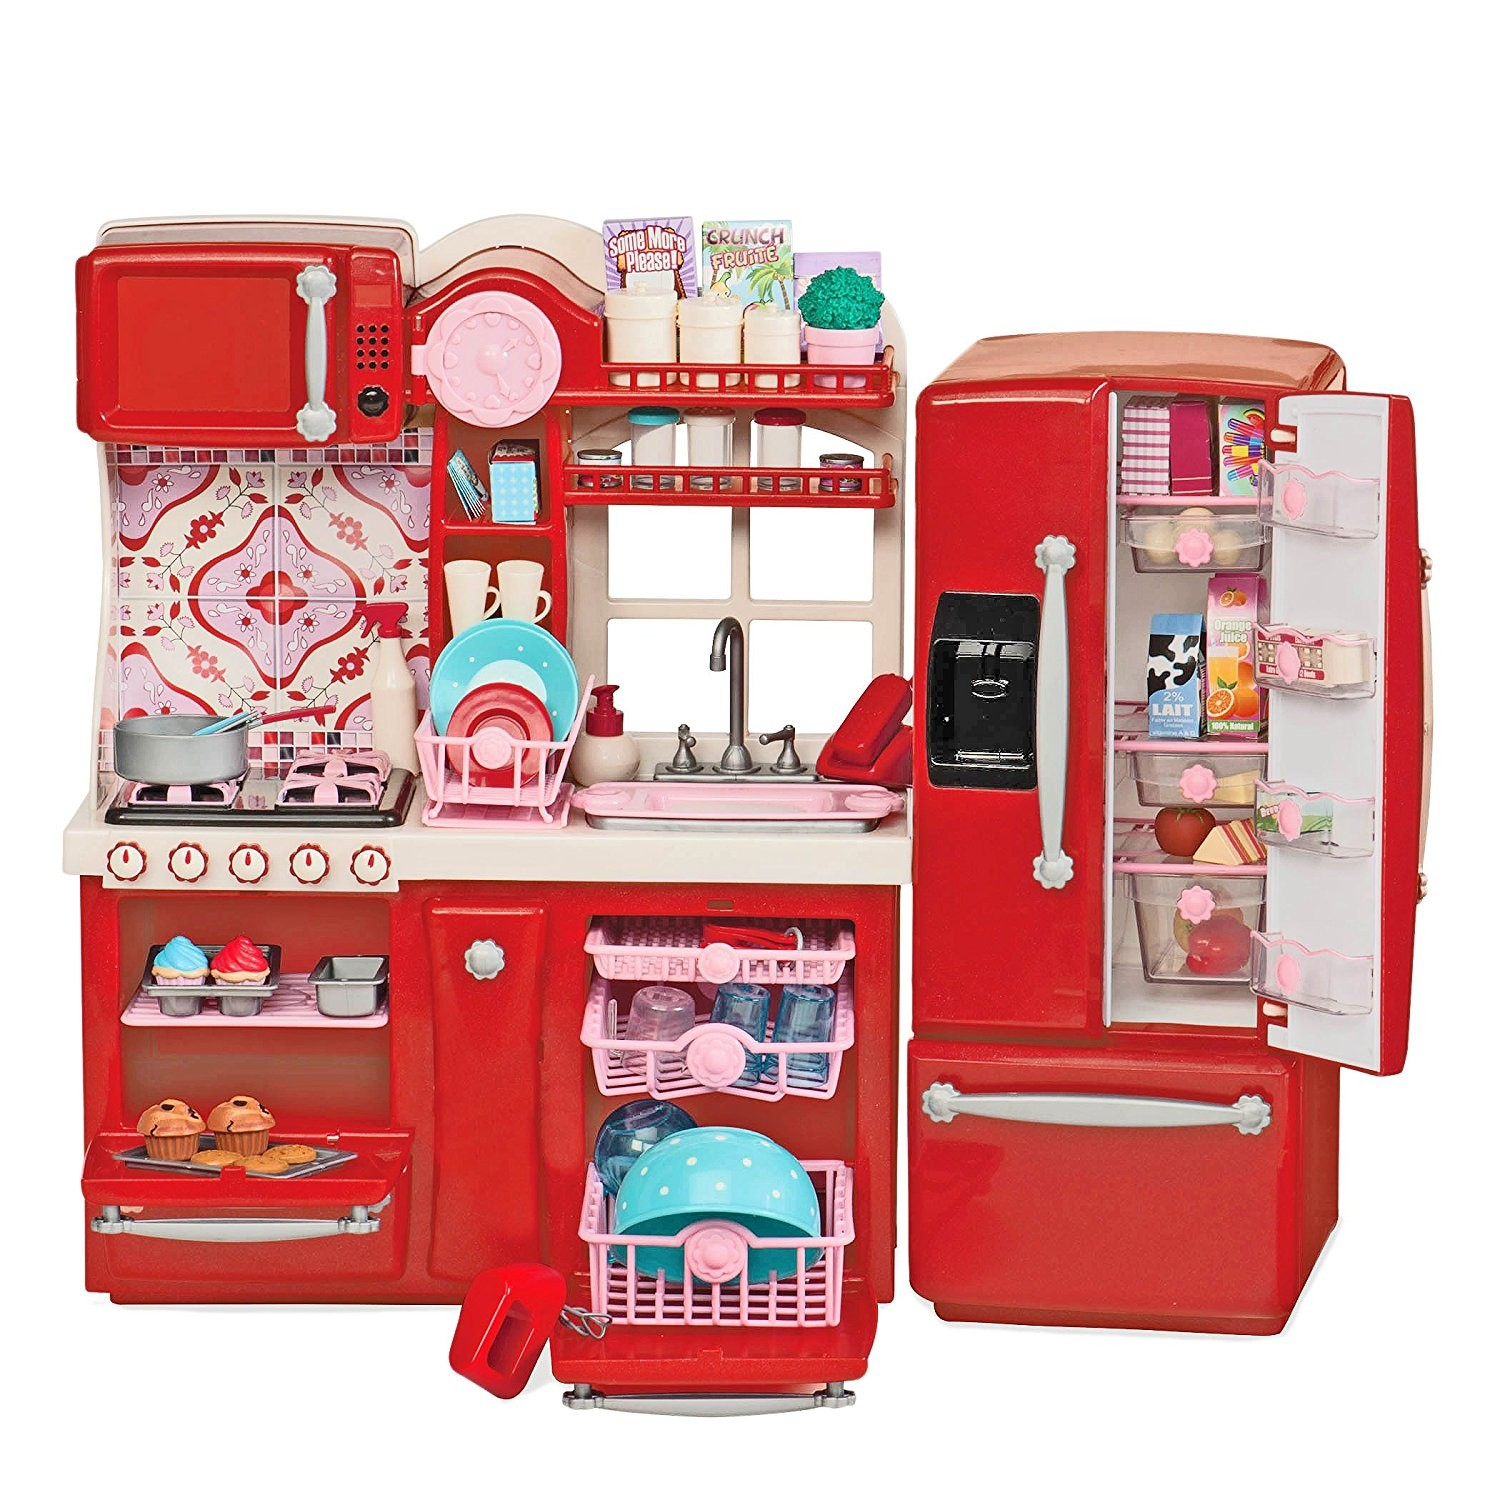 Our Generation Gourmet Kitchen Set Red Play e